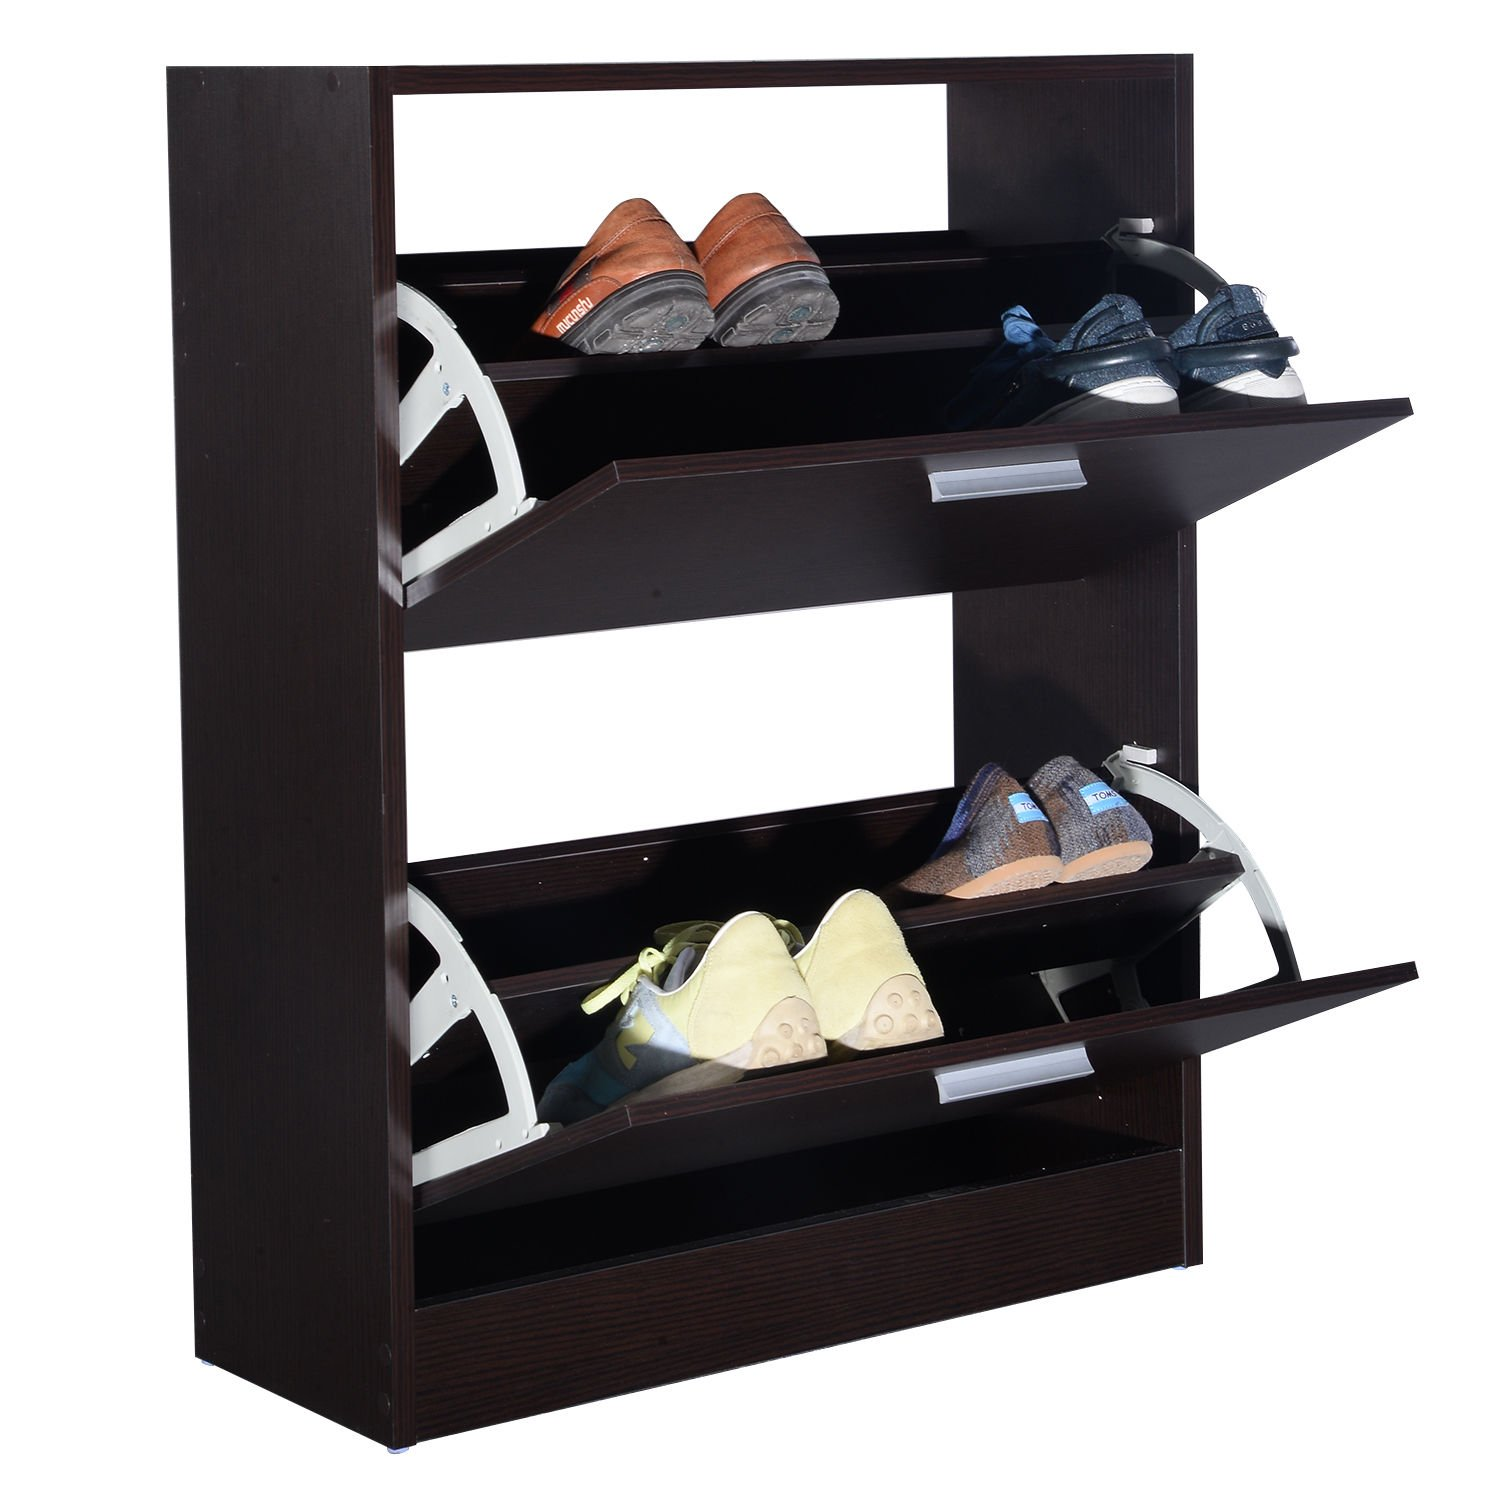 MasterPanel - Shoe Rack Storage Cabinet 2 Drawers Wood Furniture Entryway Dark Brown #TP3334